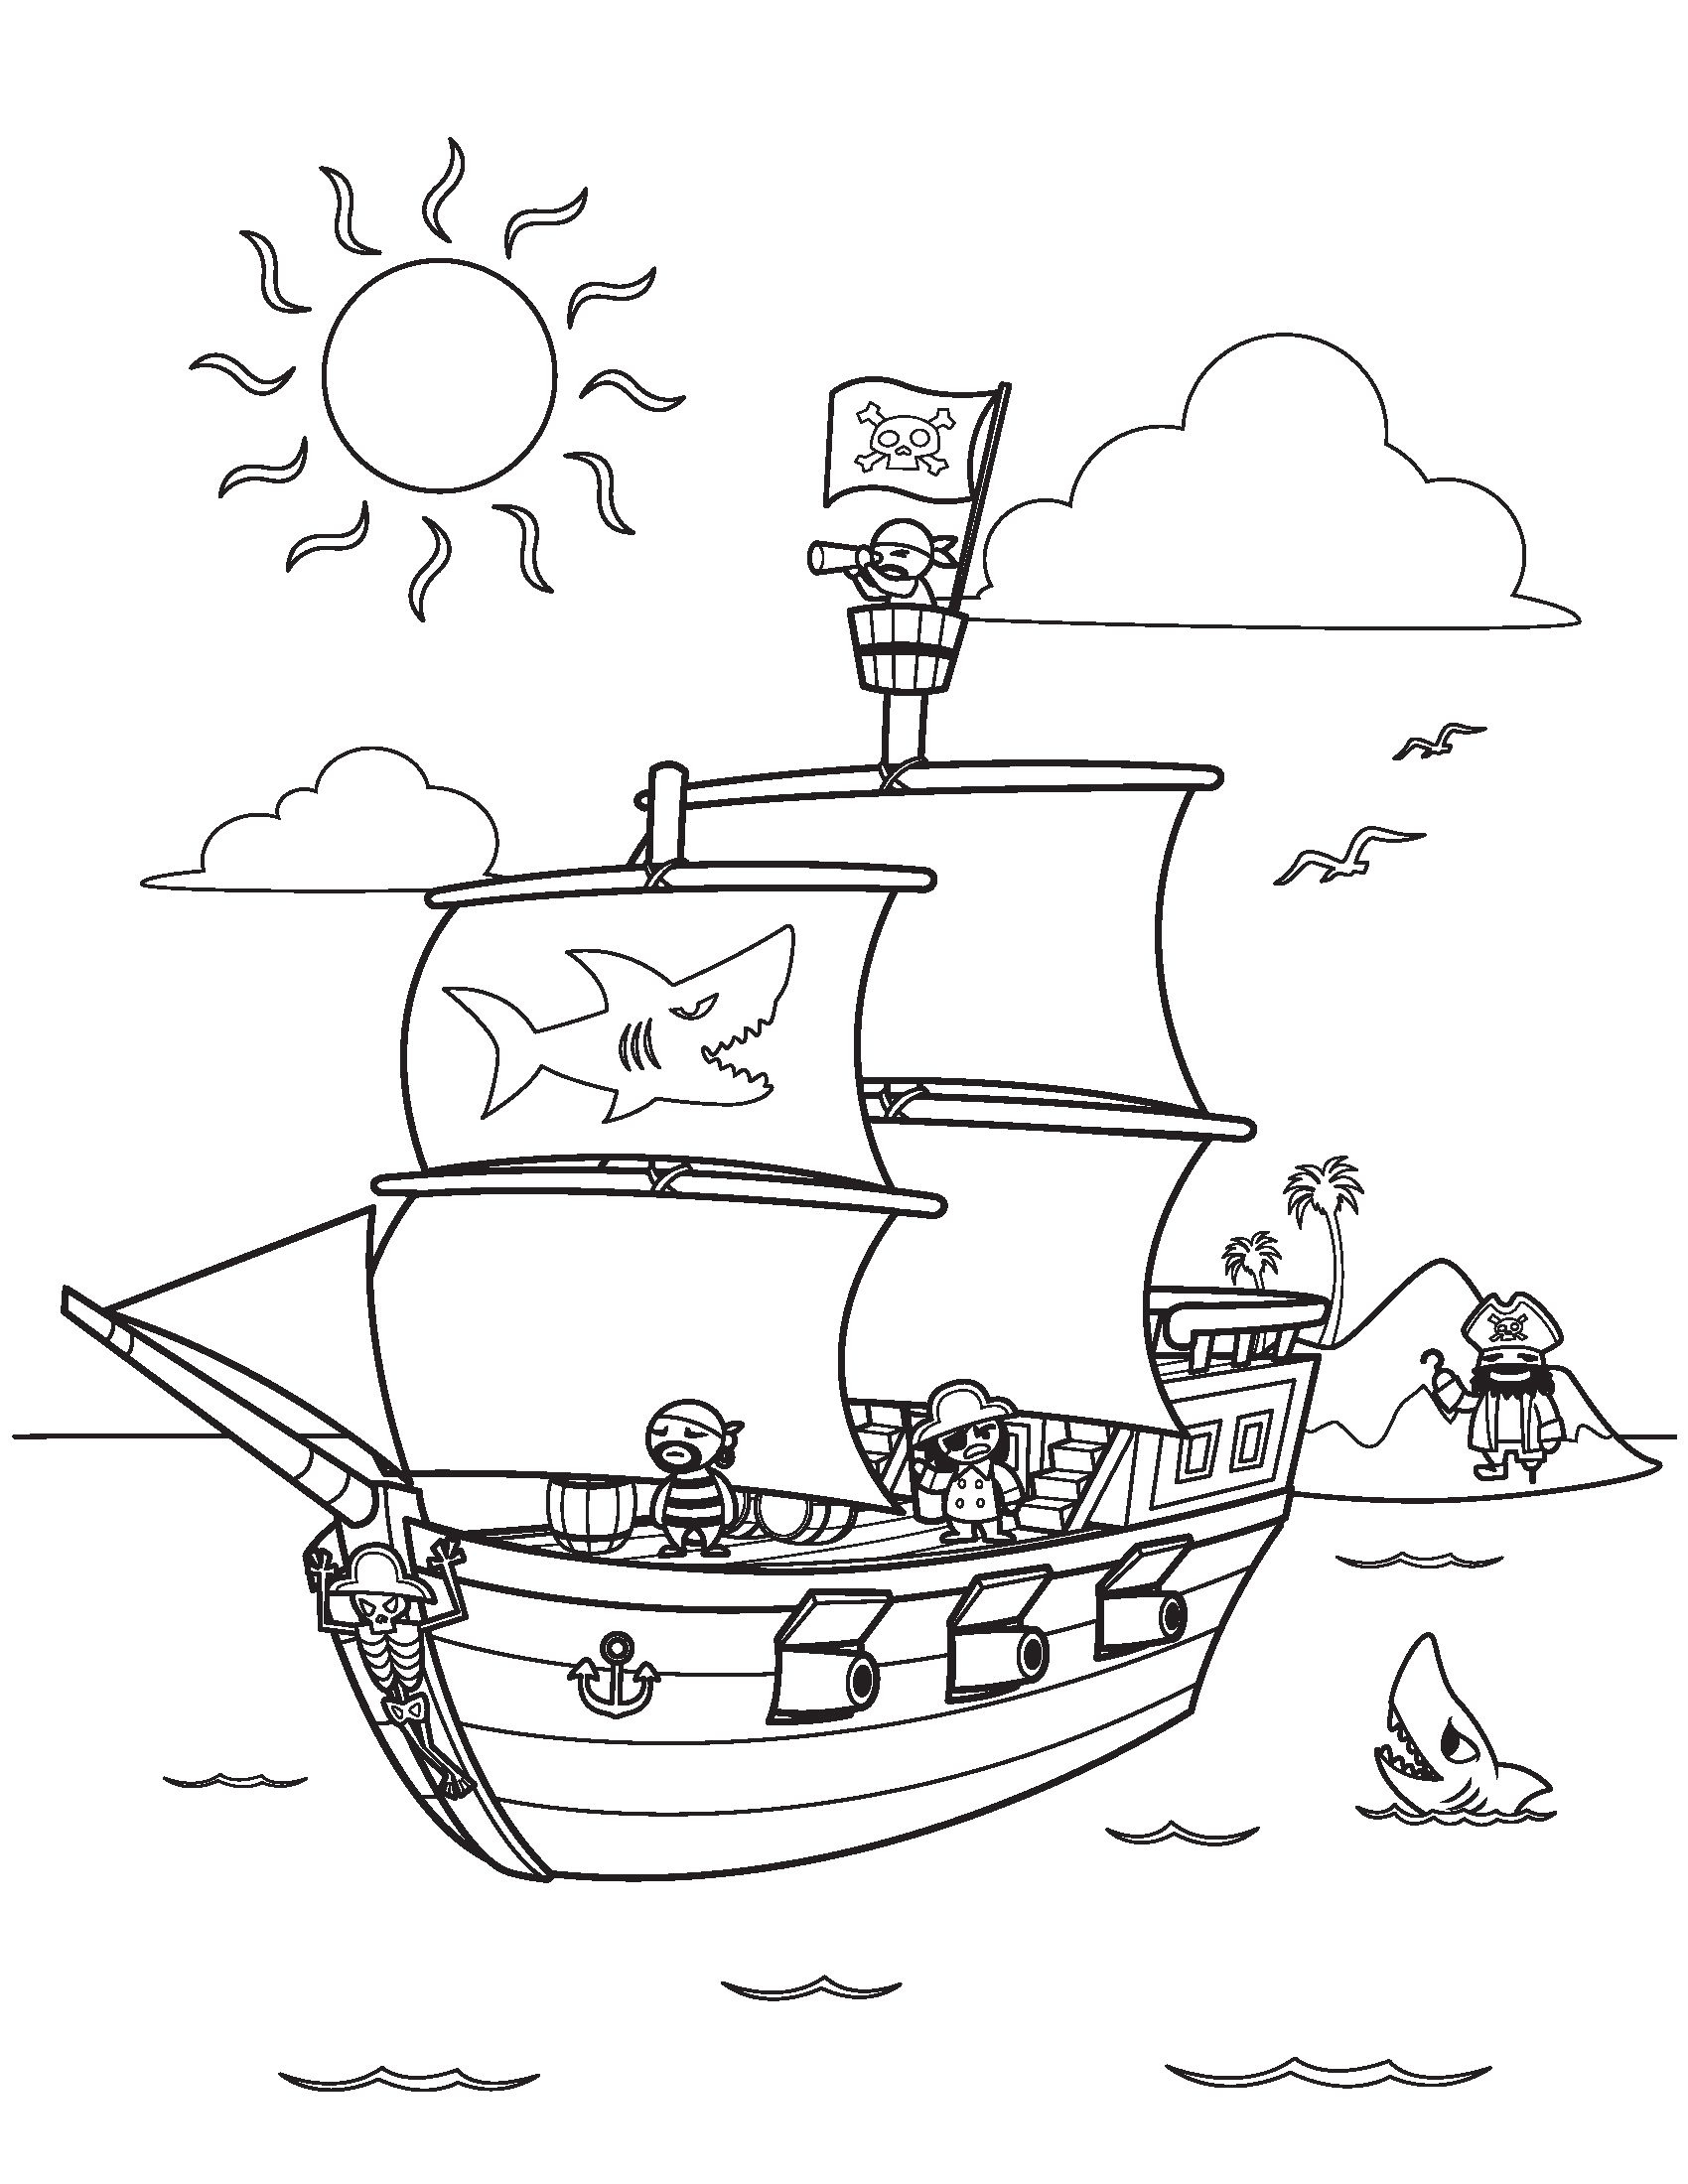 Pirate Ship Coloring Pages Kidsfreecoloring | Free Download Kids - Free Printable Boat Pictures